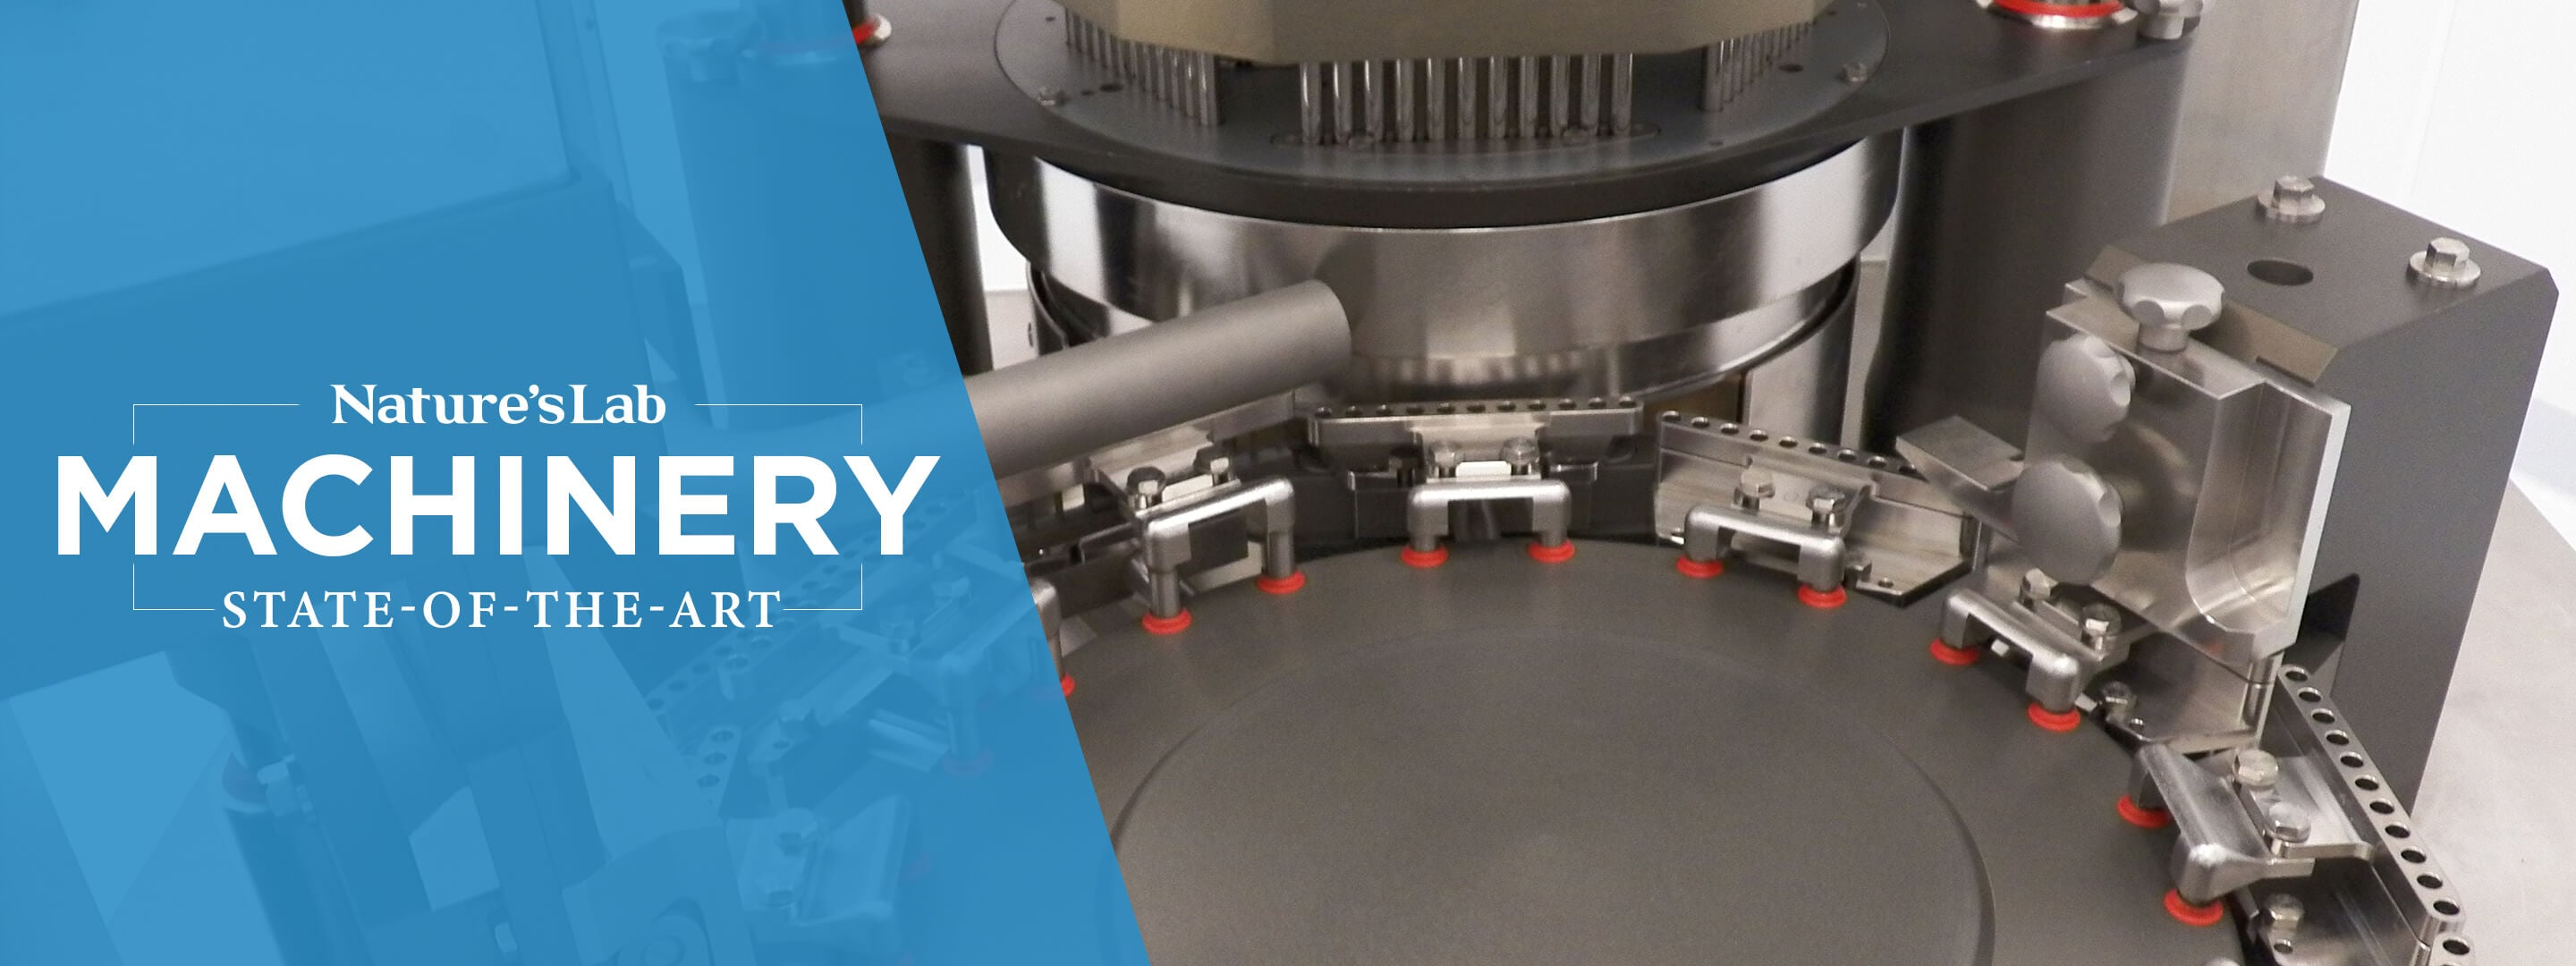 State-of-the-art Machinery